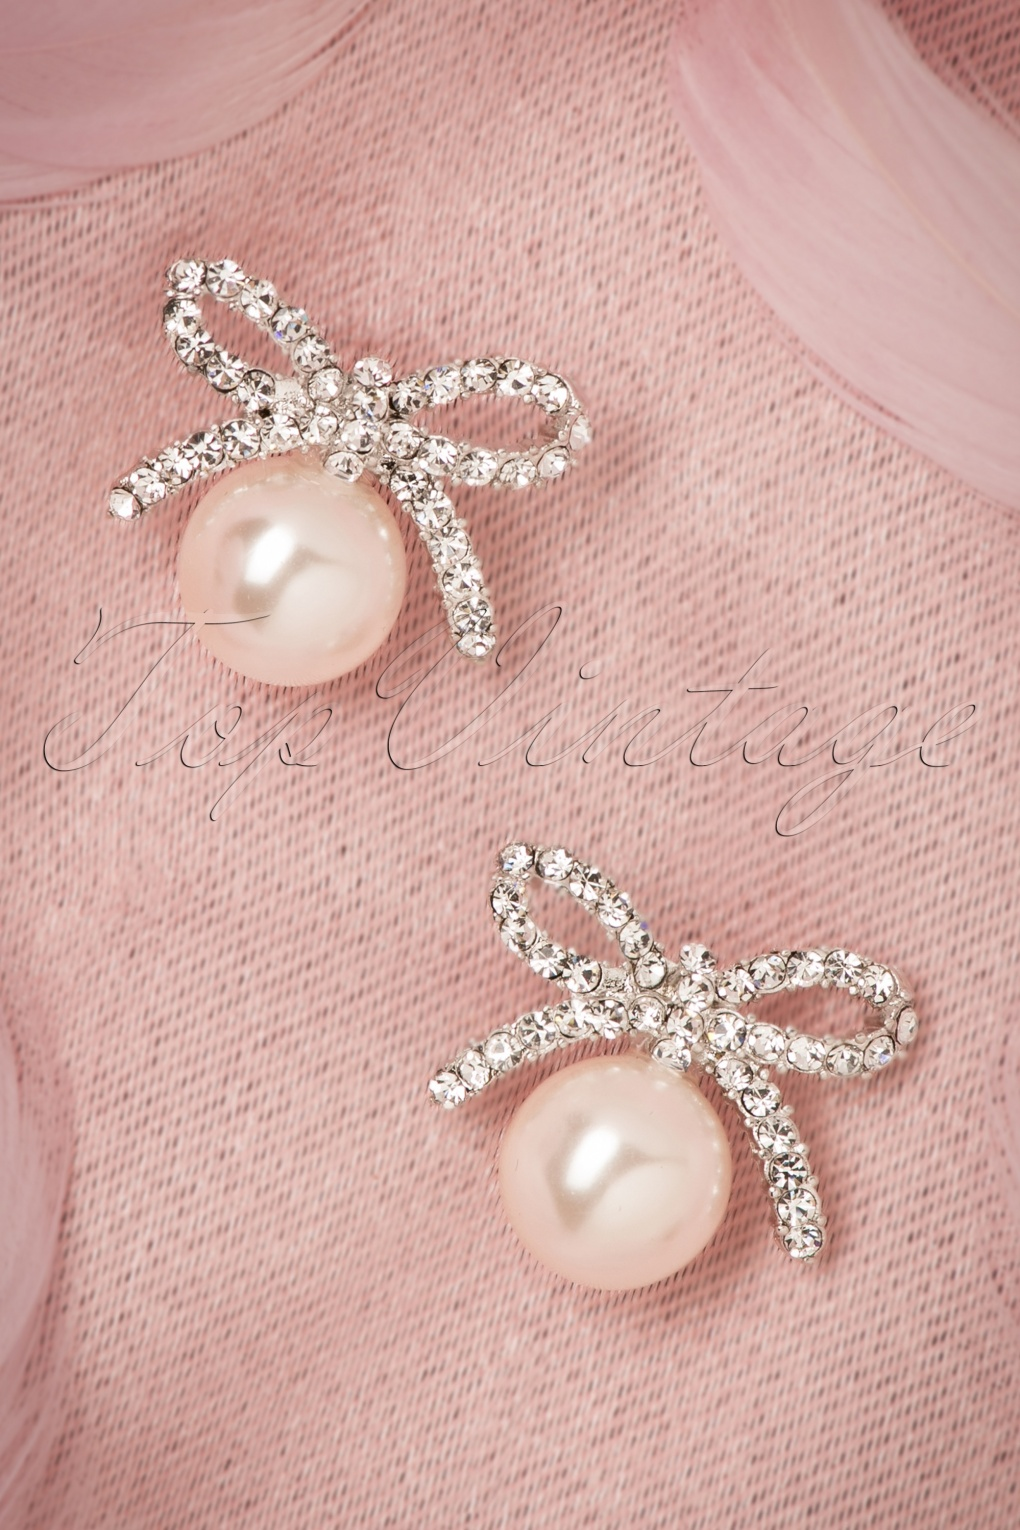 50s Jewelry: Earrings, Necklace, Brooch, Bracelet 40s Pearl and Delicate Bow Earrings in Silver £21.88 AT vintagedancer.com